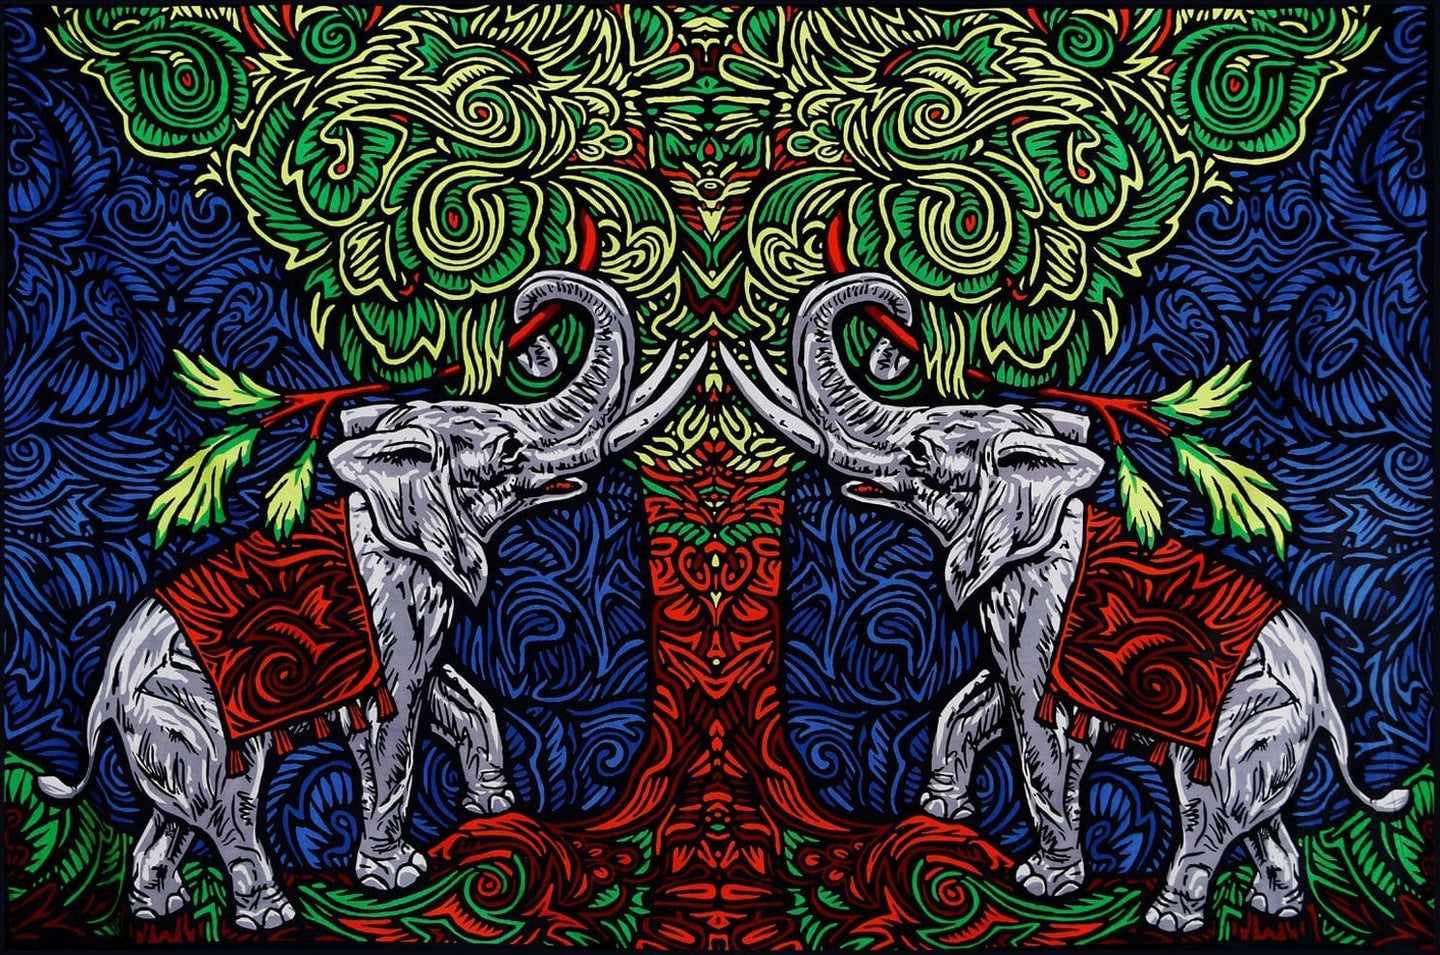 Tapestries 3D - Elephant Tree - Tapestry 008884